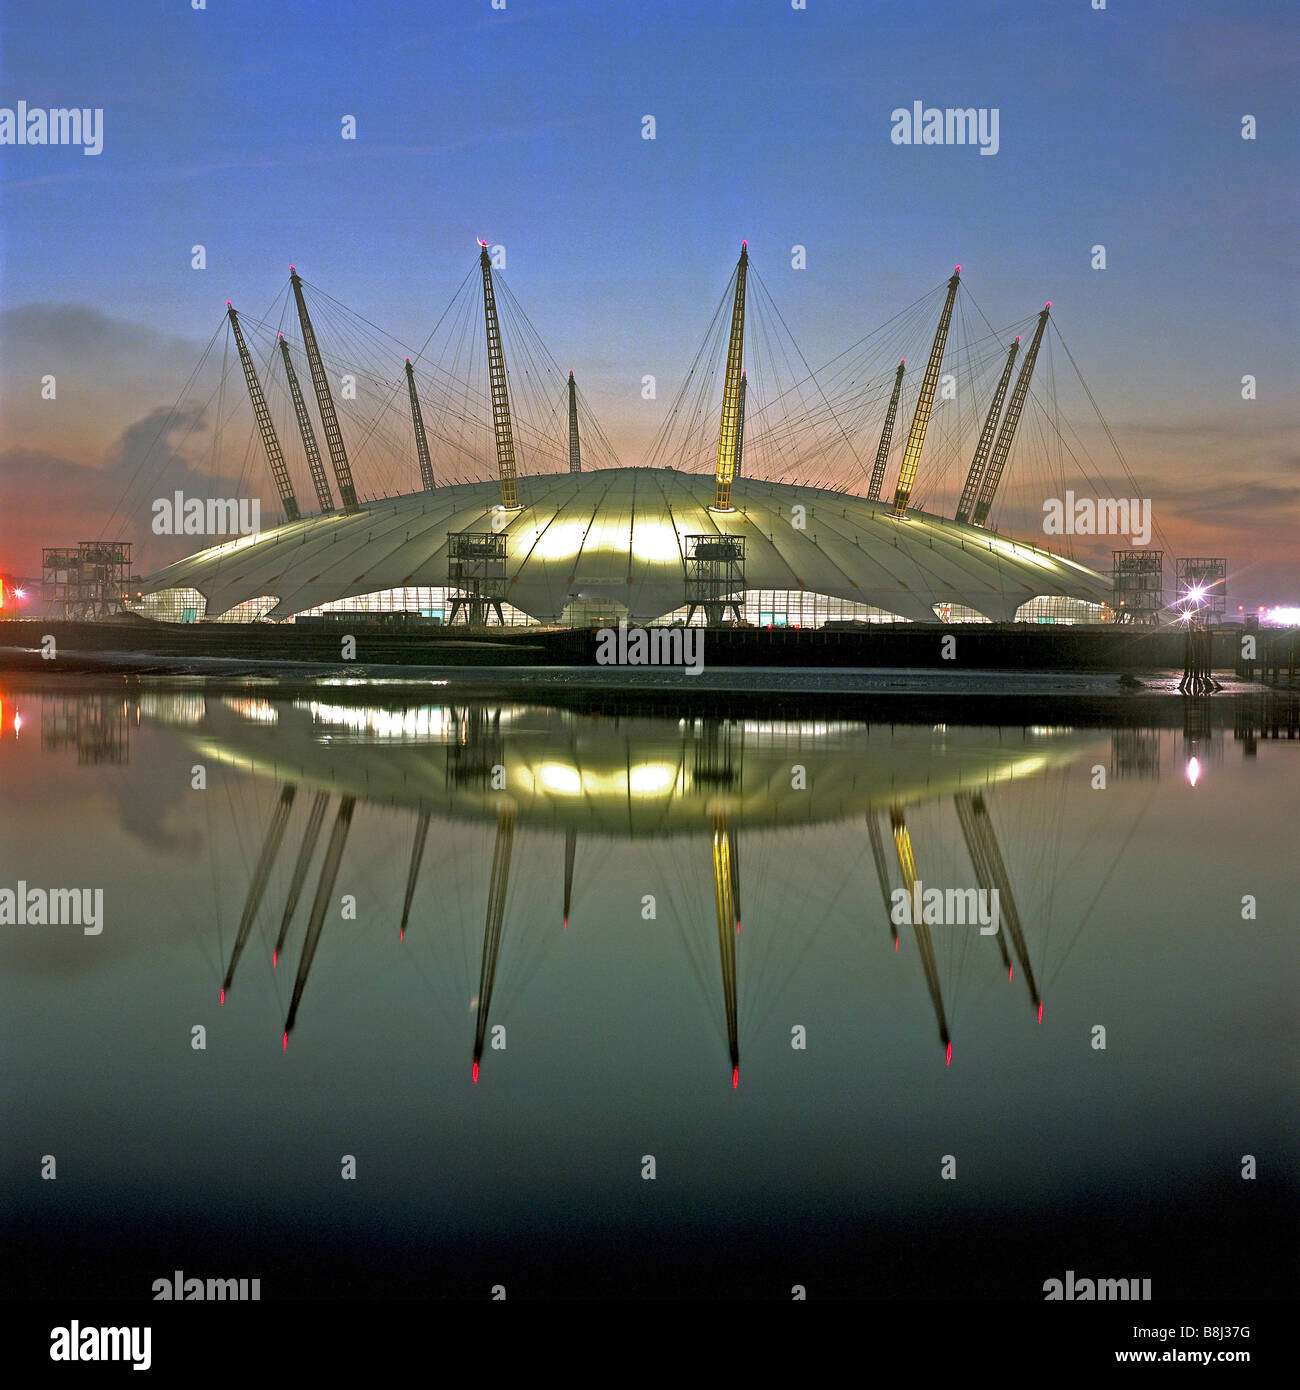 View of the completed structure of the Millennium Dome/O2 Arena in London reflected in the early morning sunrise. Stock Photo